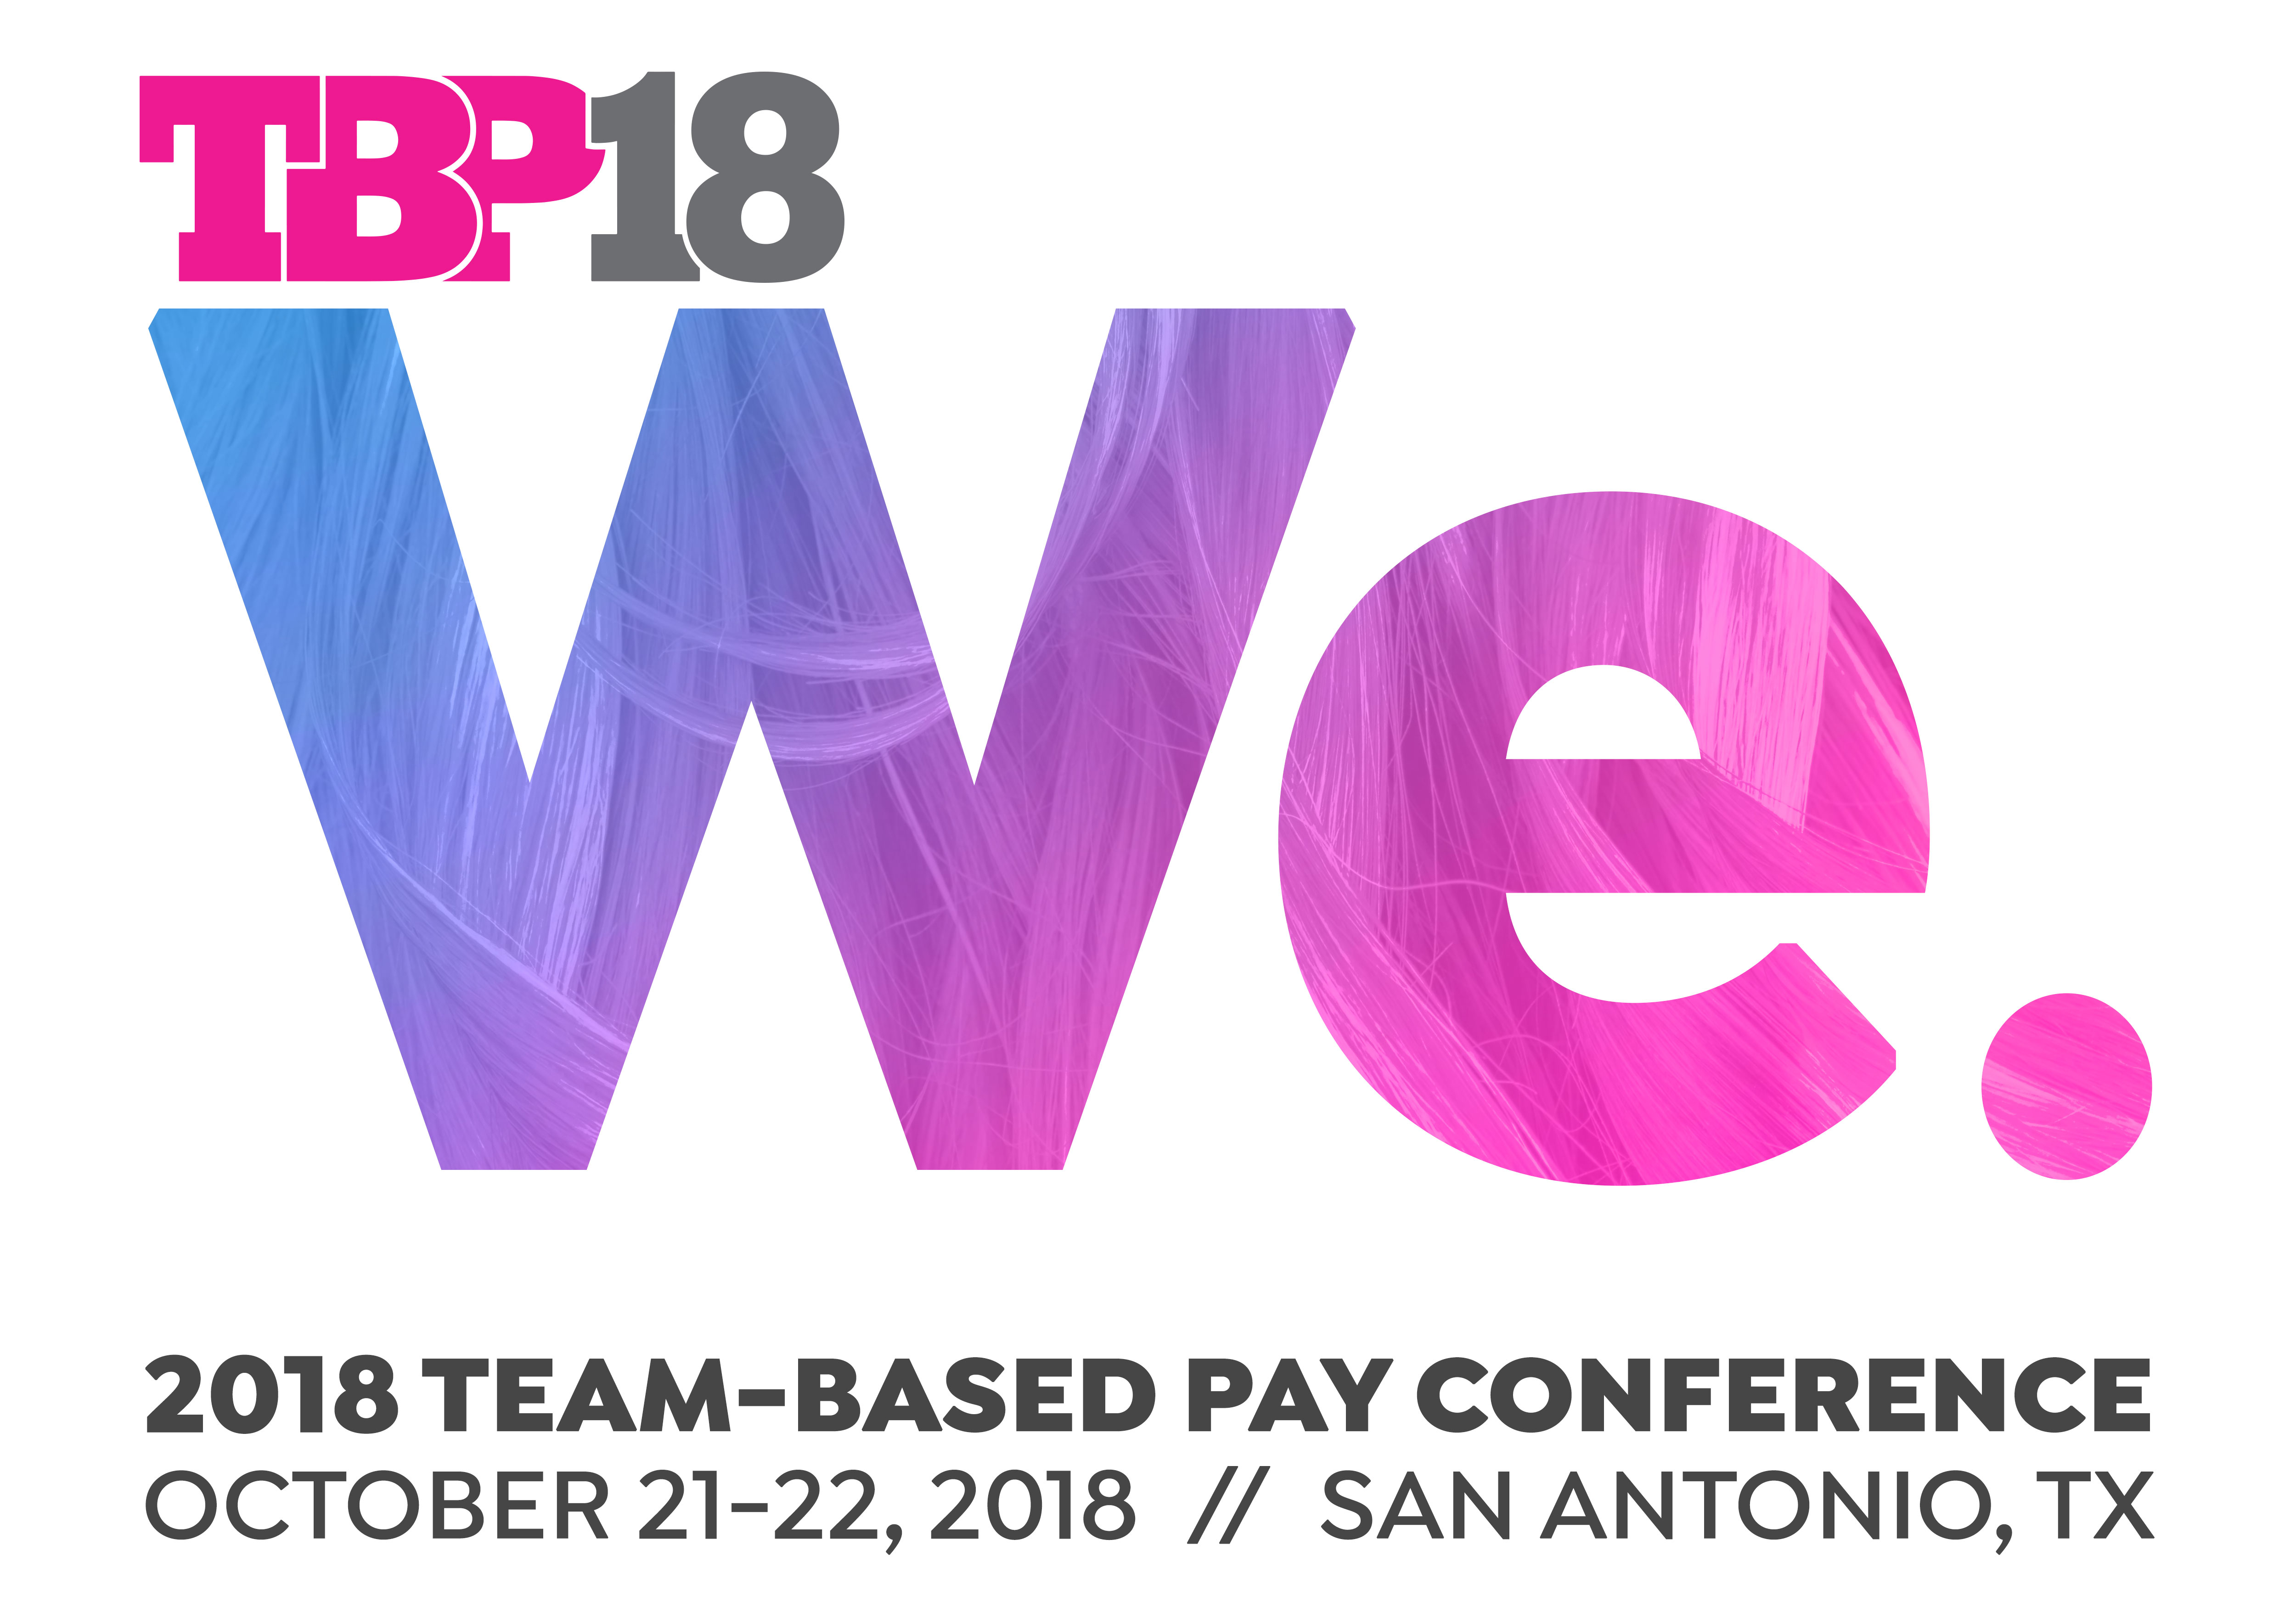 Strategies Announces 5th Annual Team-Based Pay Conference